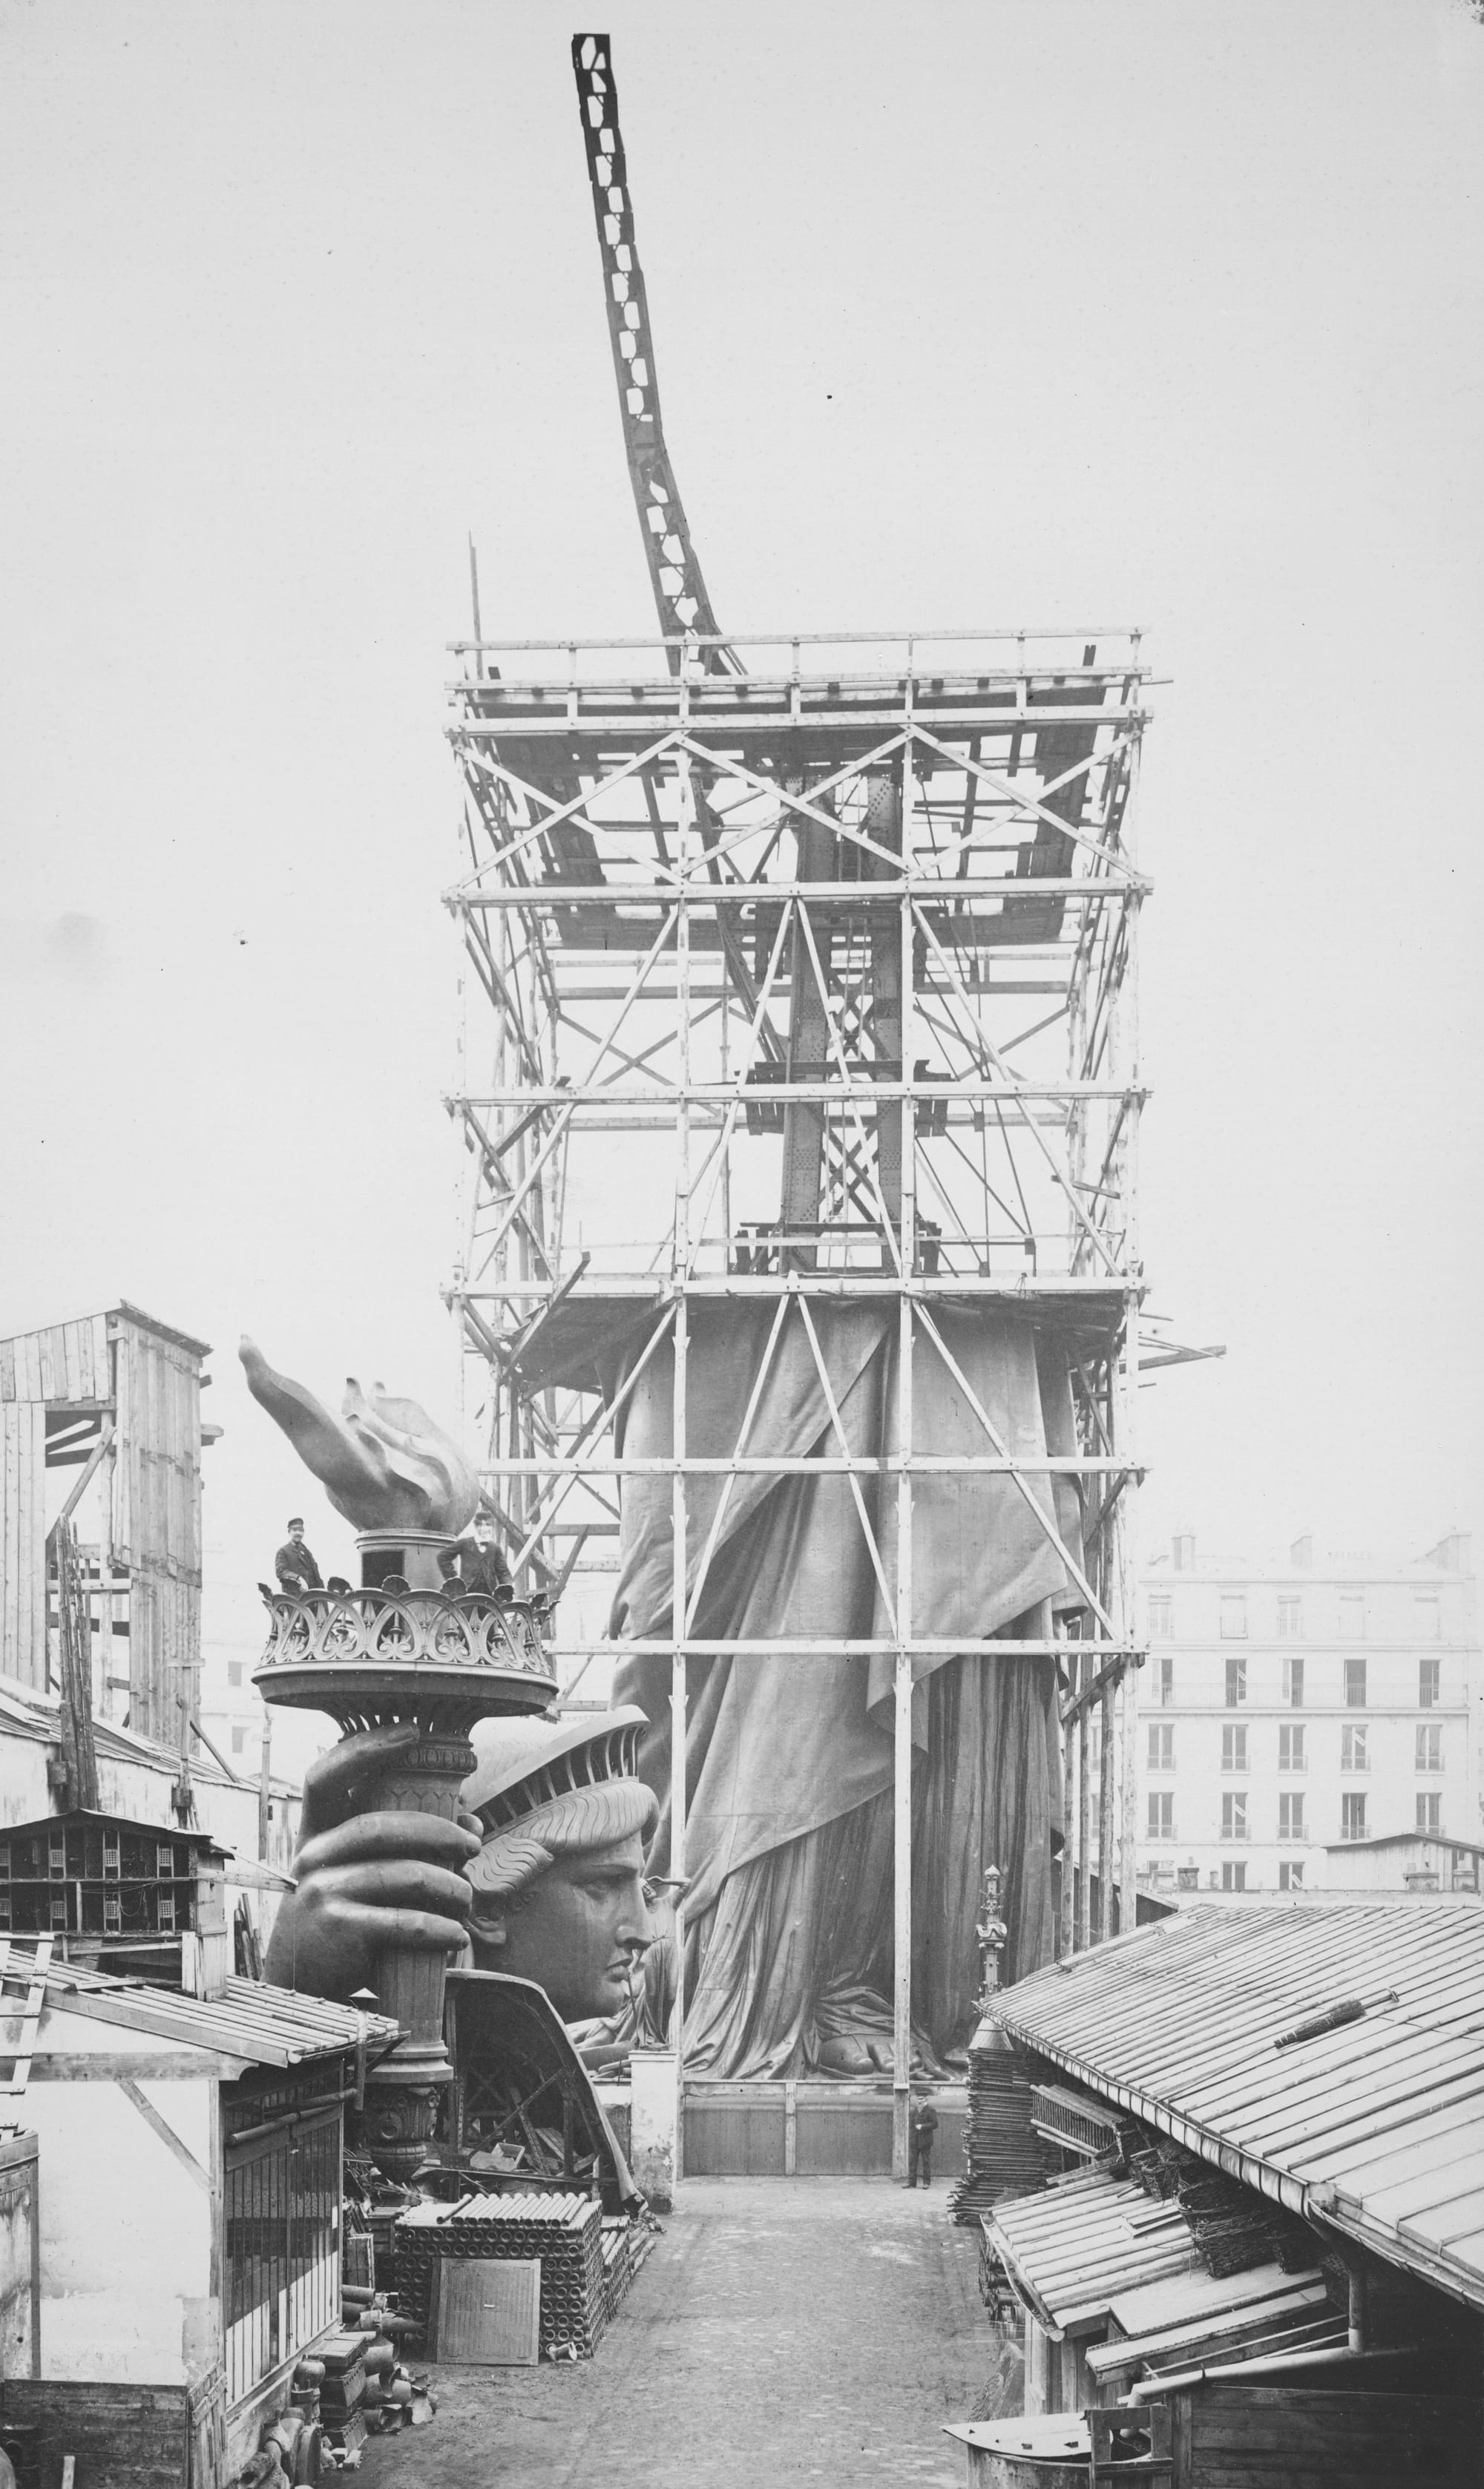 Albert Fernique, _Assemblage of the Statue of Liberty in Paris, Showing the Bottom Half of the Statue Erect under Scaffolding, the Head and Torch at Its Feet,_ 1883. © The Miriam and Ira D. Wallach Division of Art, Prints and Photographs: Photography Collection, The New York Public Library, Public Library Digital Collection